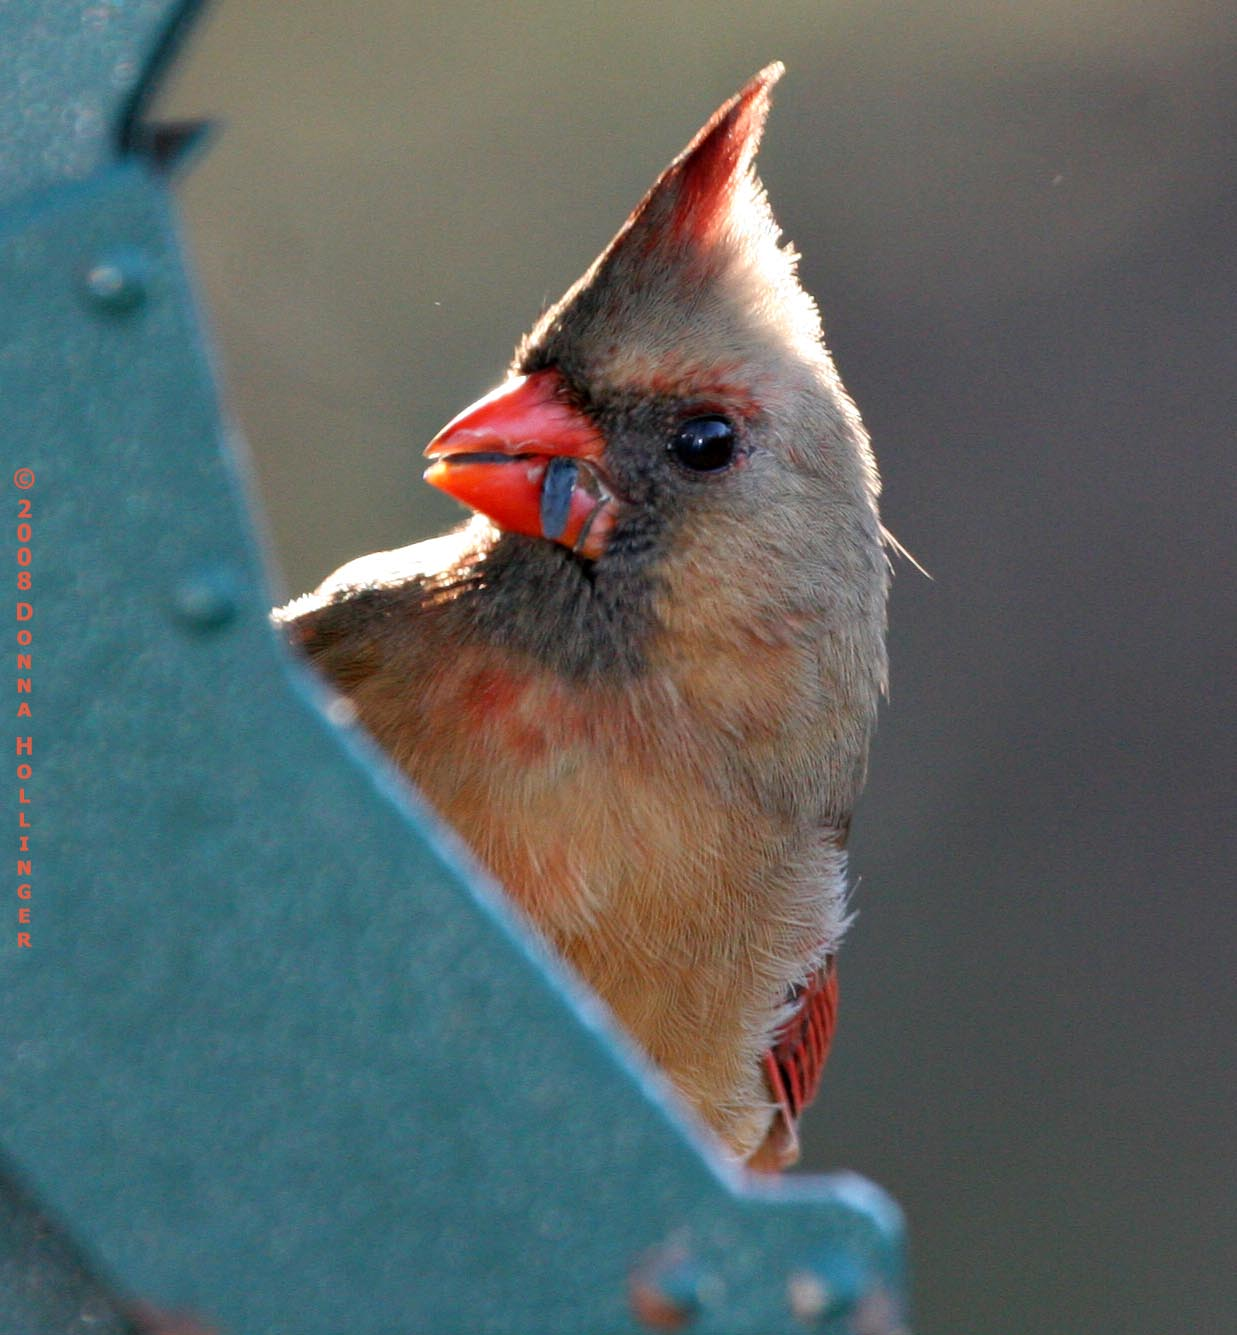 Female Cardinal Profile